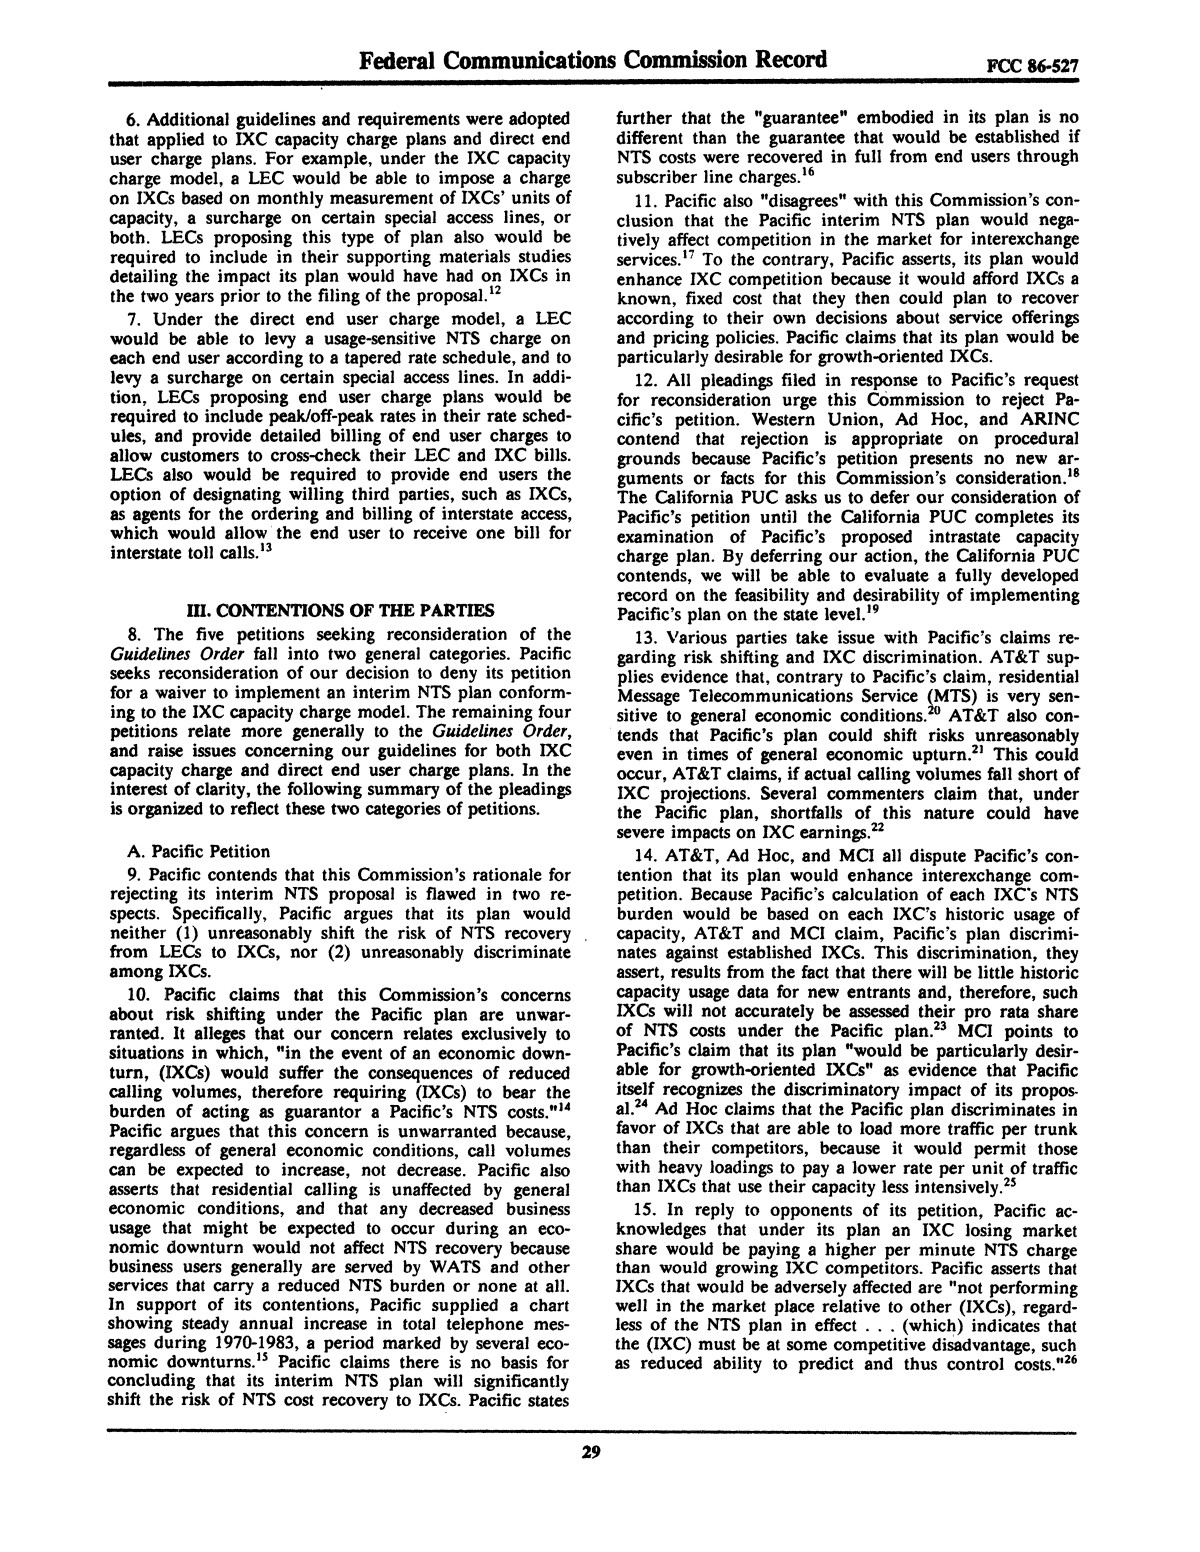 FCC Record, Volume 2, No. 1, Pages 1 to 409, January 5 - January 16, 1987                                                                                                      29